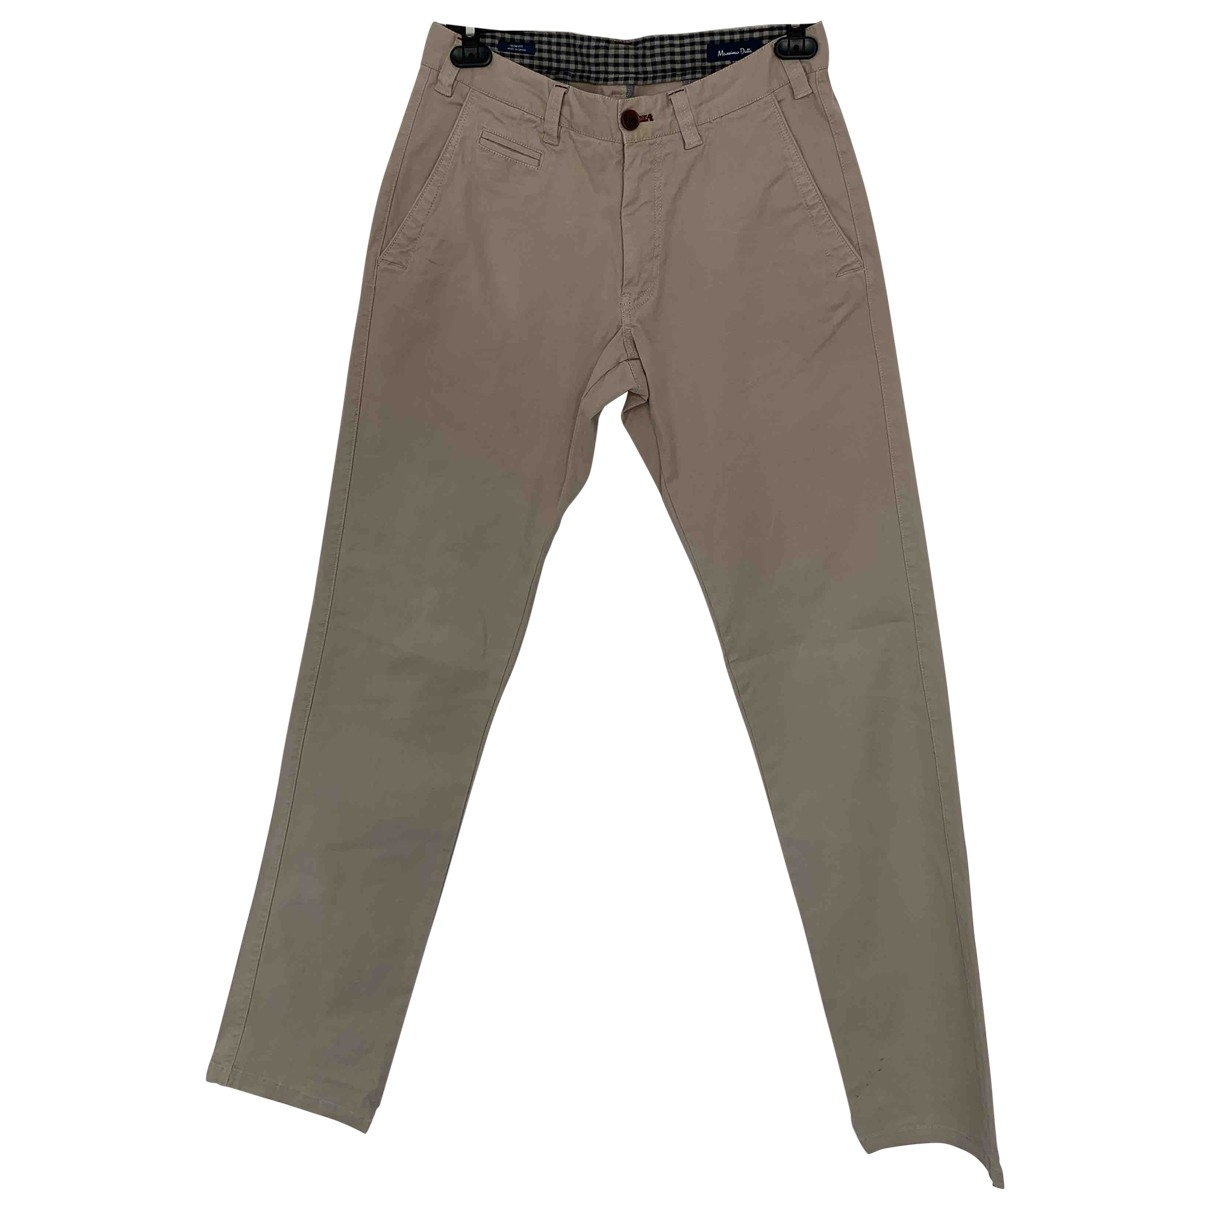 Massimo Dutti \N Beige Cotton Trousers for Men 38 FR